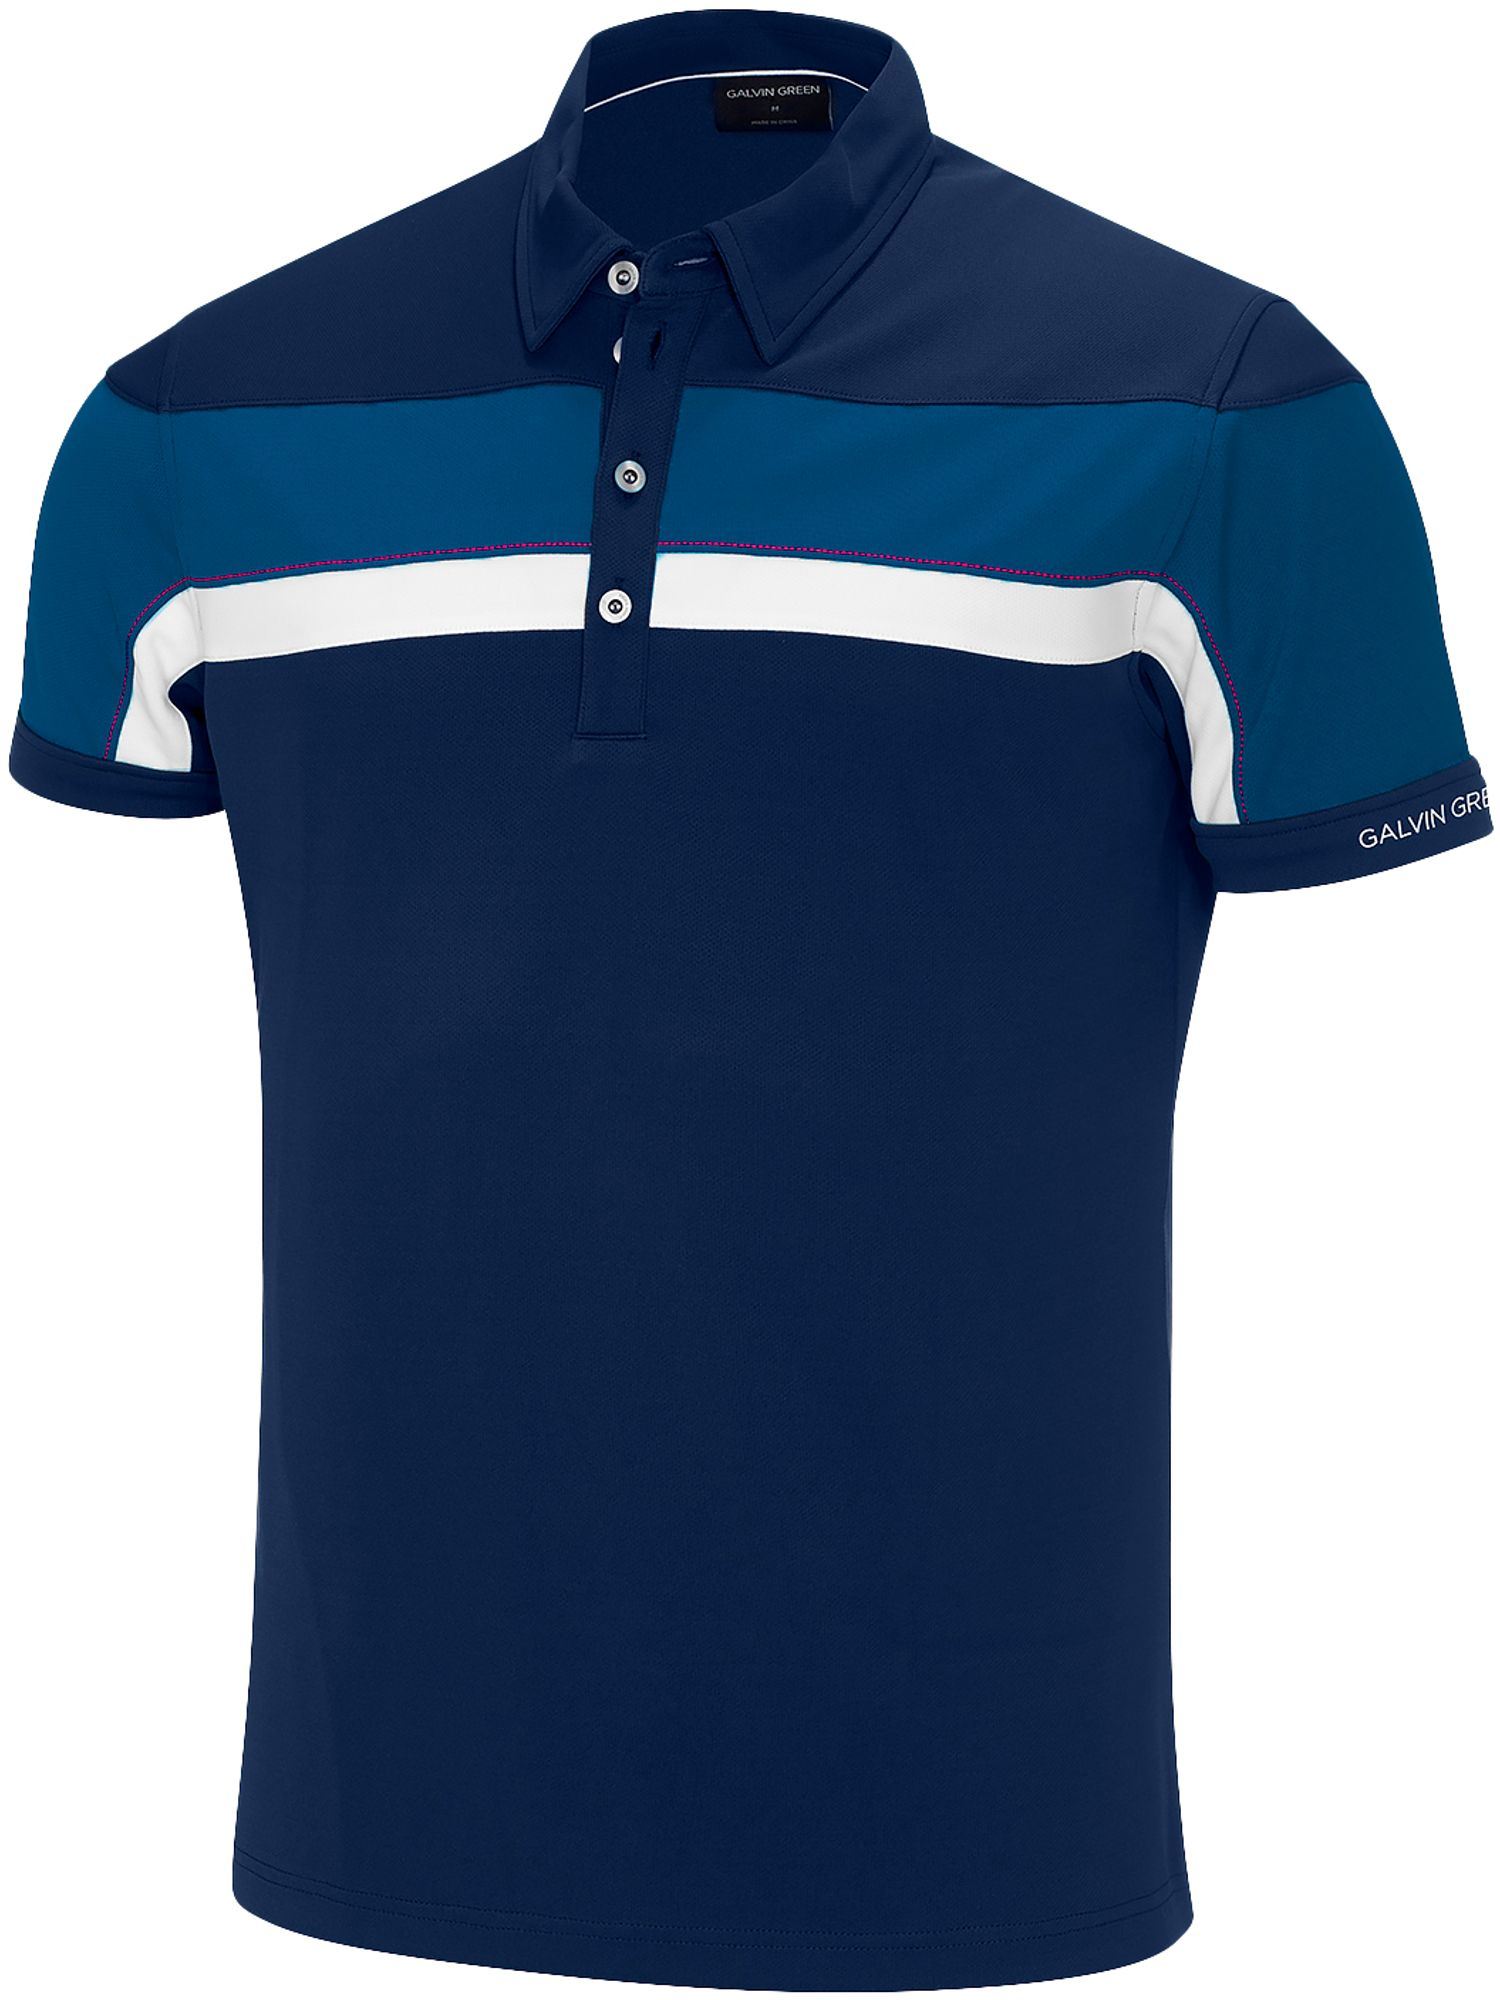 Men's Galvin Green Mitchell Ventil8 Polo, Blue